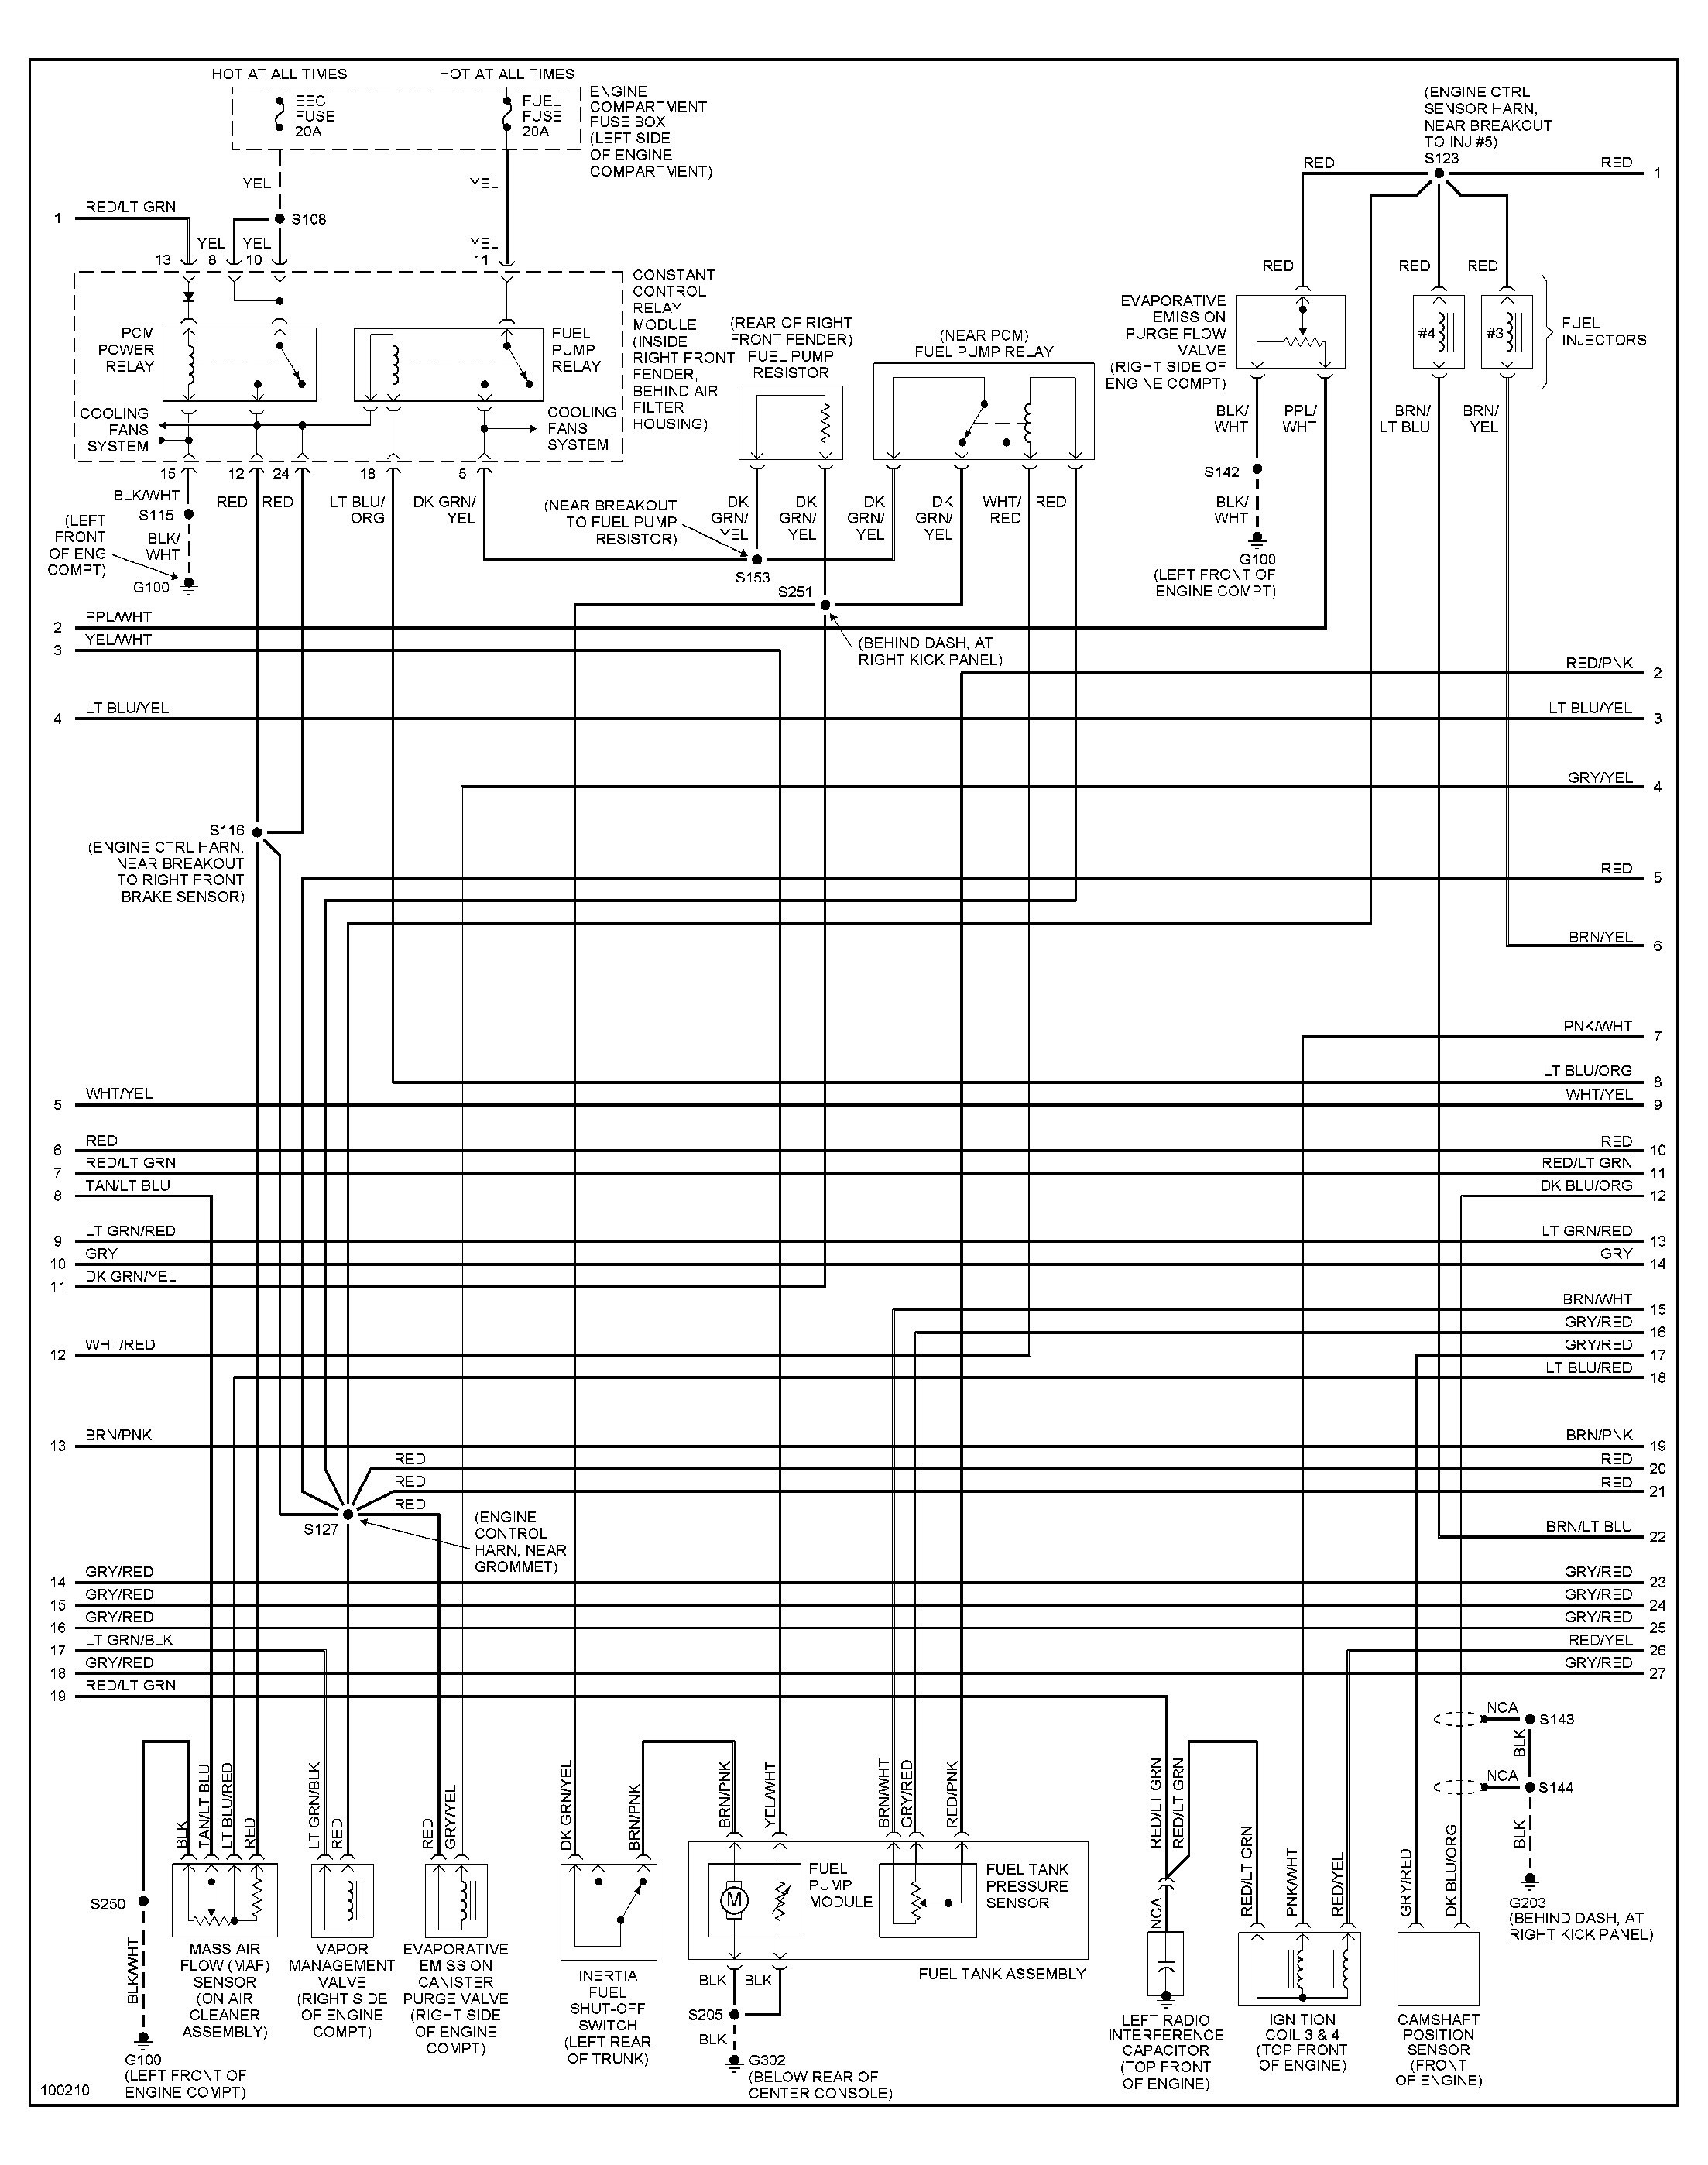 2001 Mustang Mach 460 Wiring Diagram from i0.wp.com